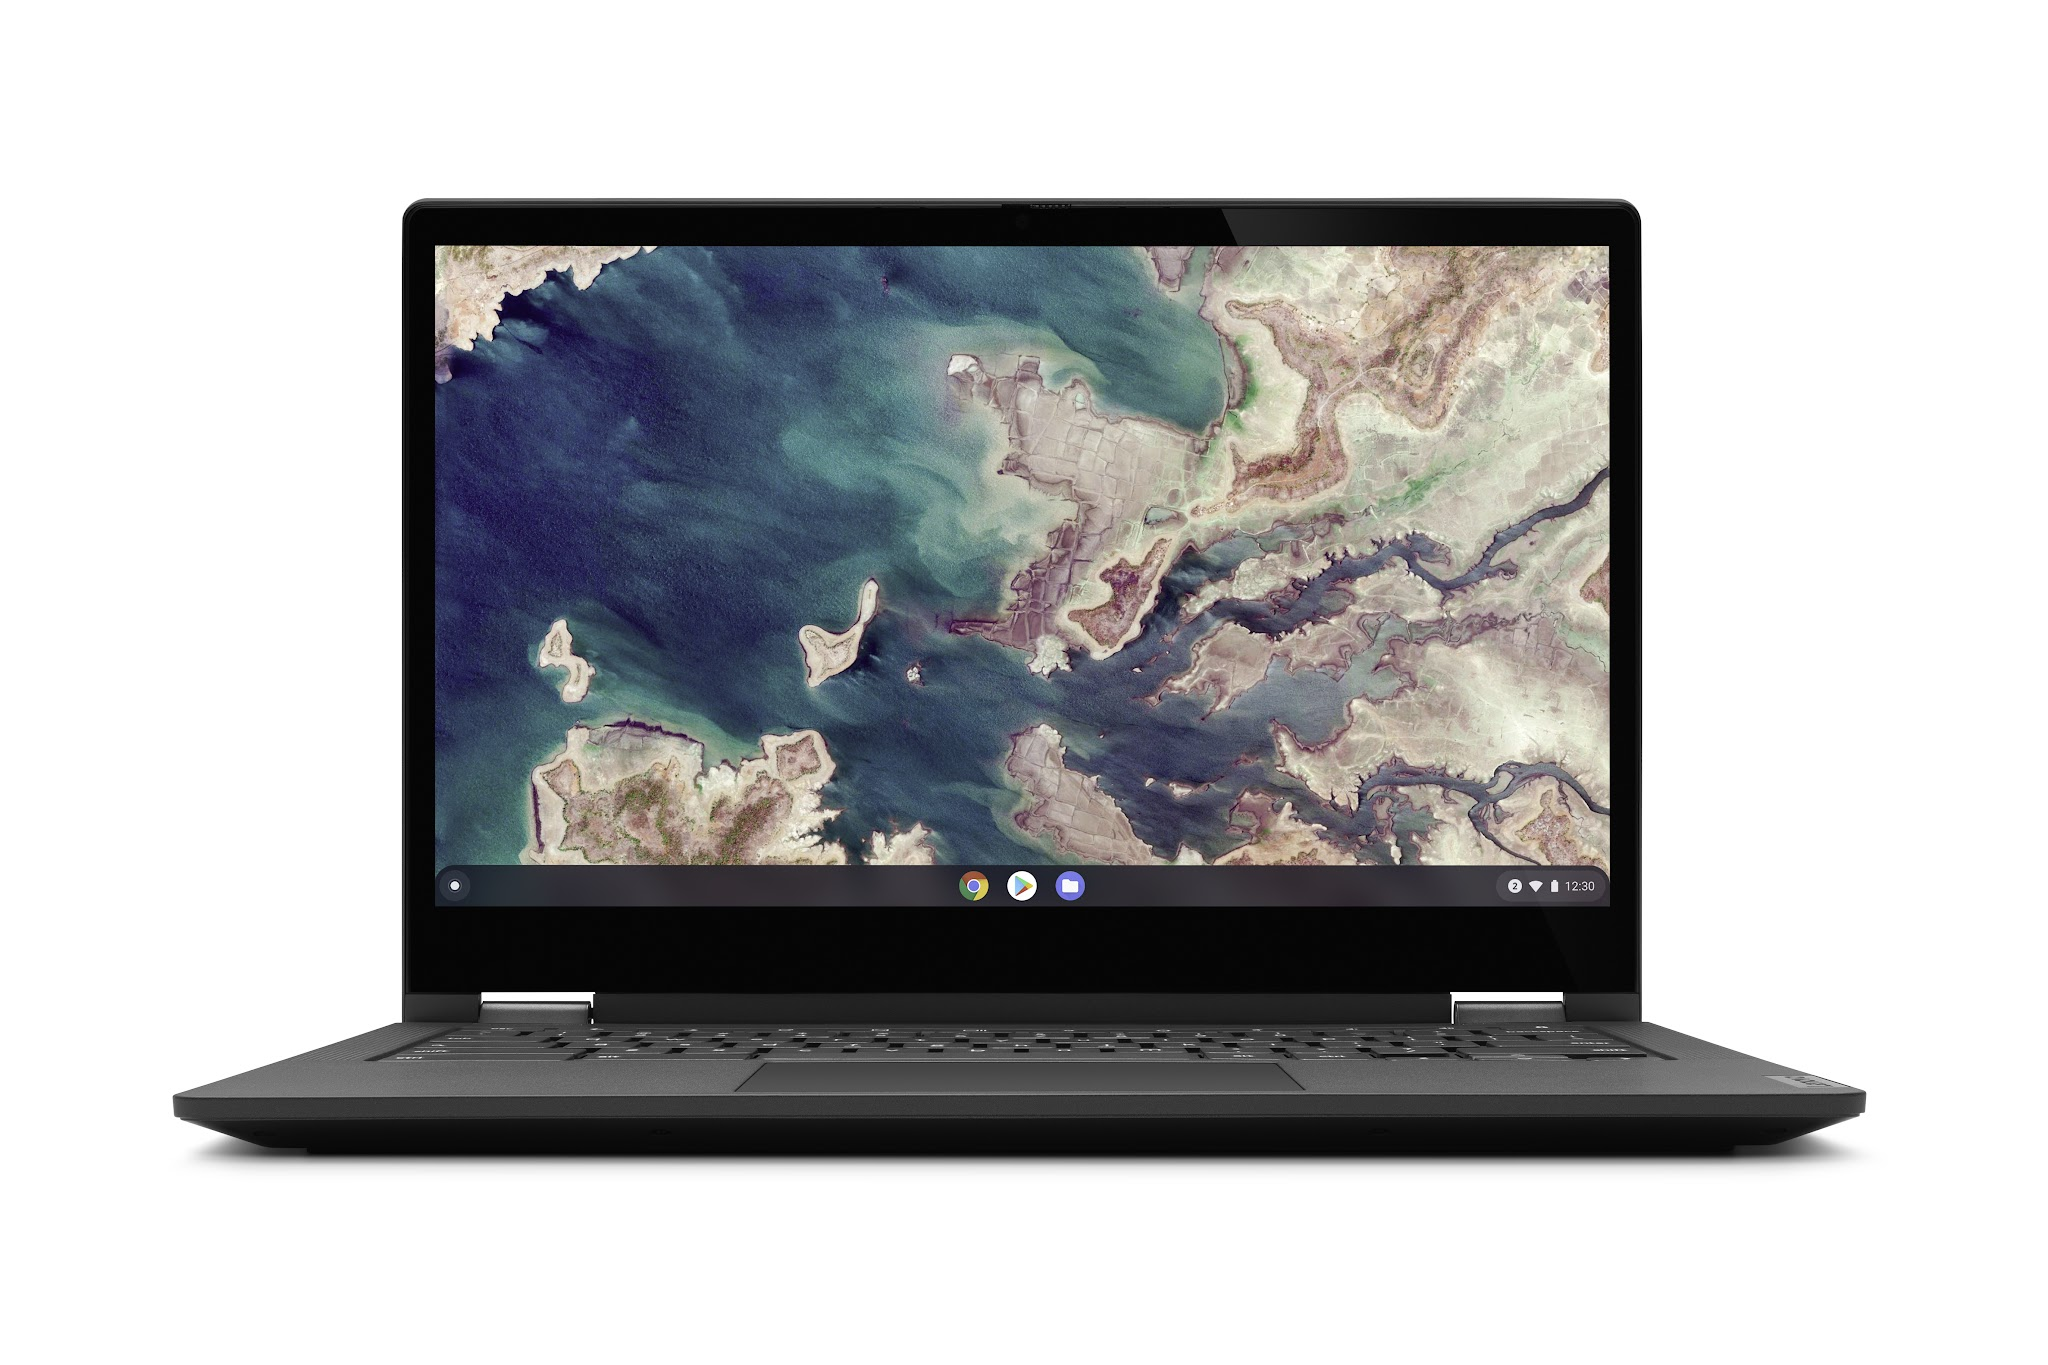 Lenovo IdeaPad Flex 5i (13 tum, 5) - photo 1